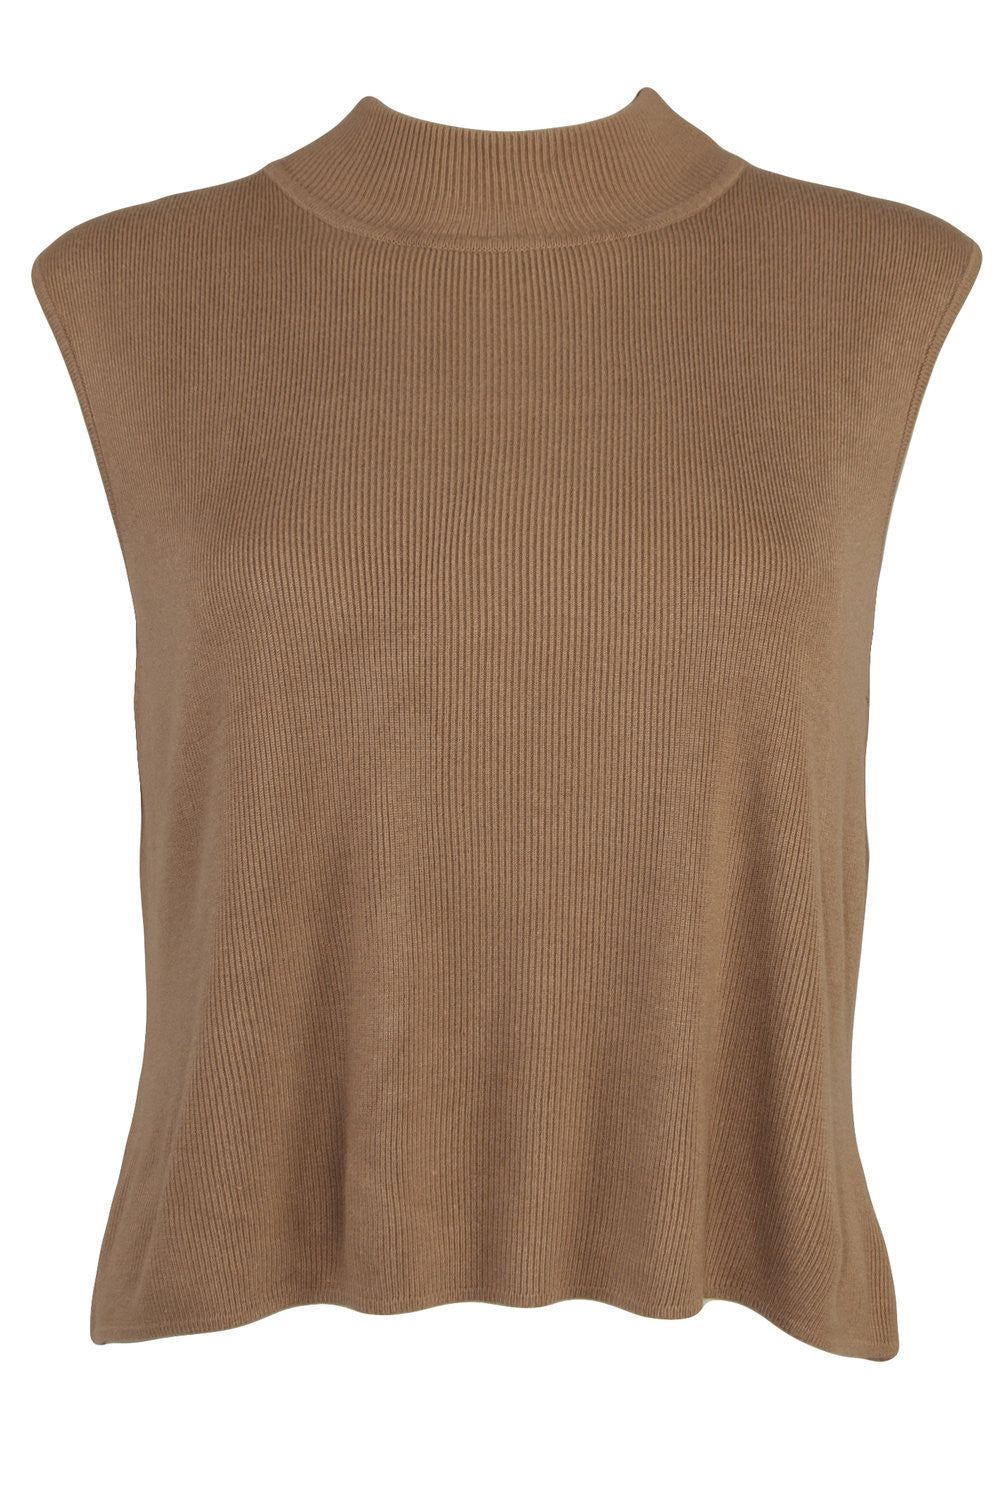 Mock neck tank top in camel